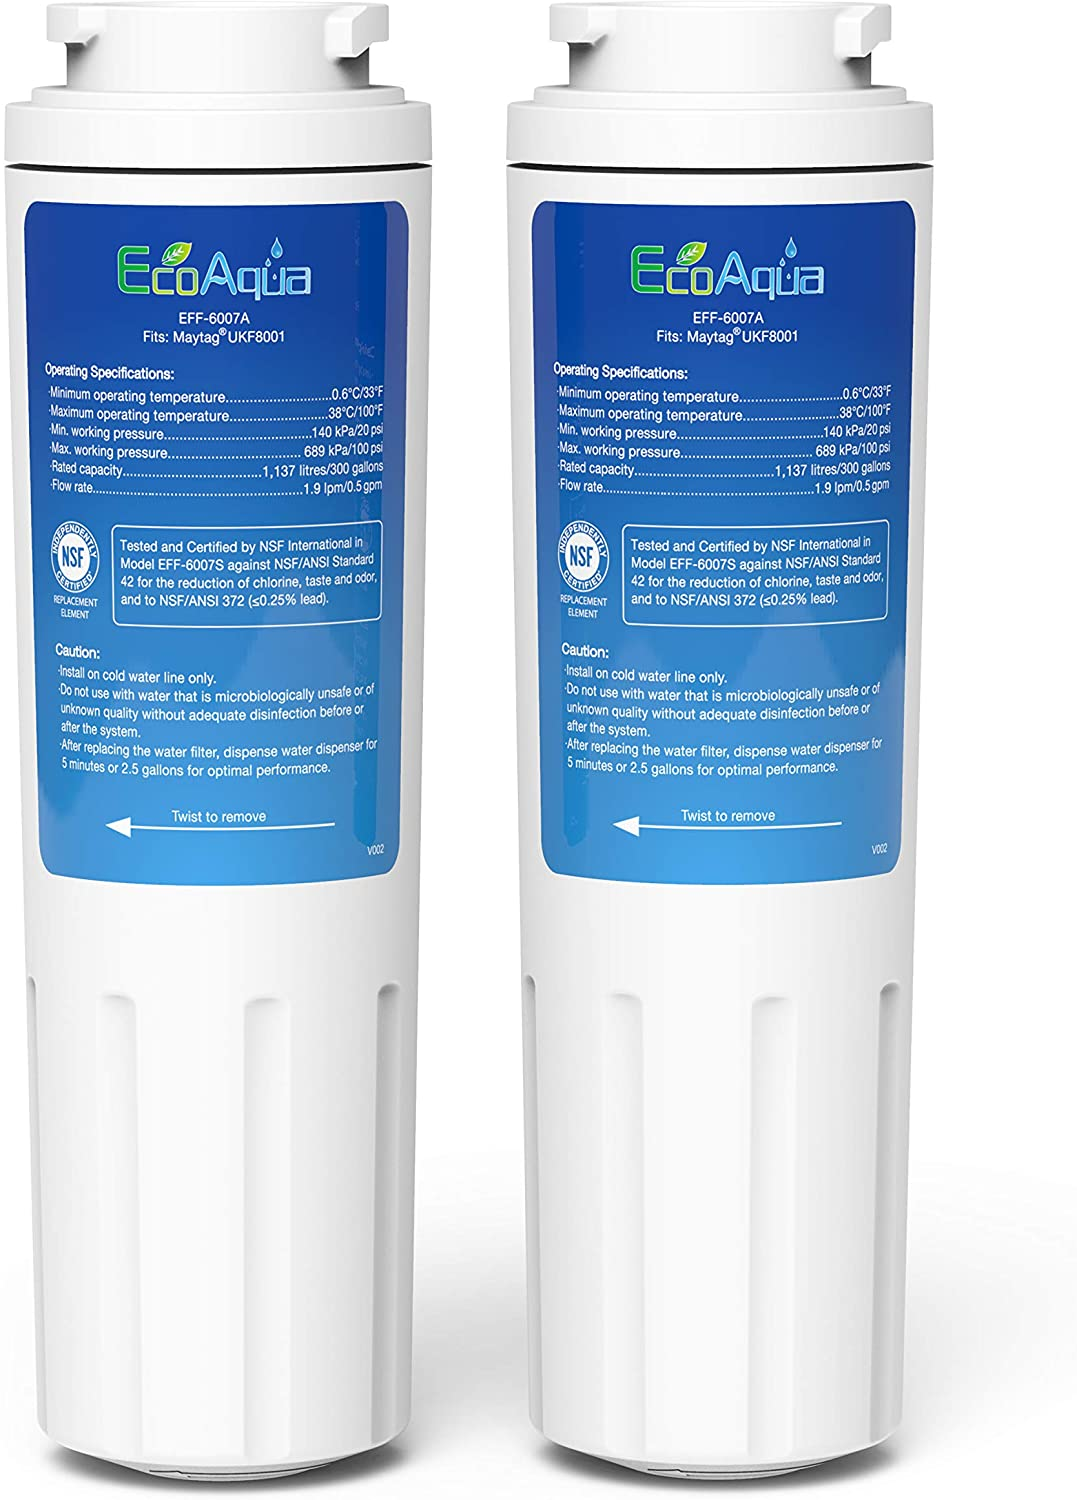 EcoAqua EFF-6007A Replacement Filter, Compatible with Maytag UKF8001, EDR4RXD1, Whirlpool 4396395, Puriclean II, Kenmore 46-9006, Everydrop Filter 4, Viking RWFFR Refrigerator Water Filter, 2 Pack